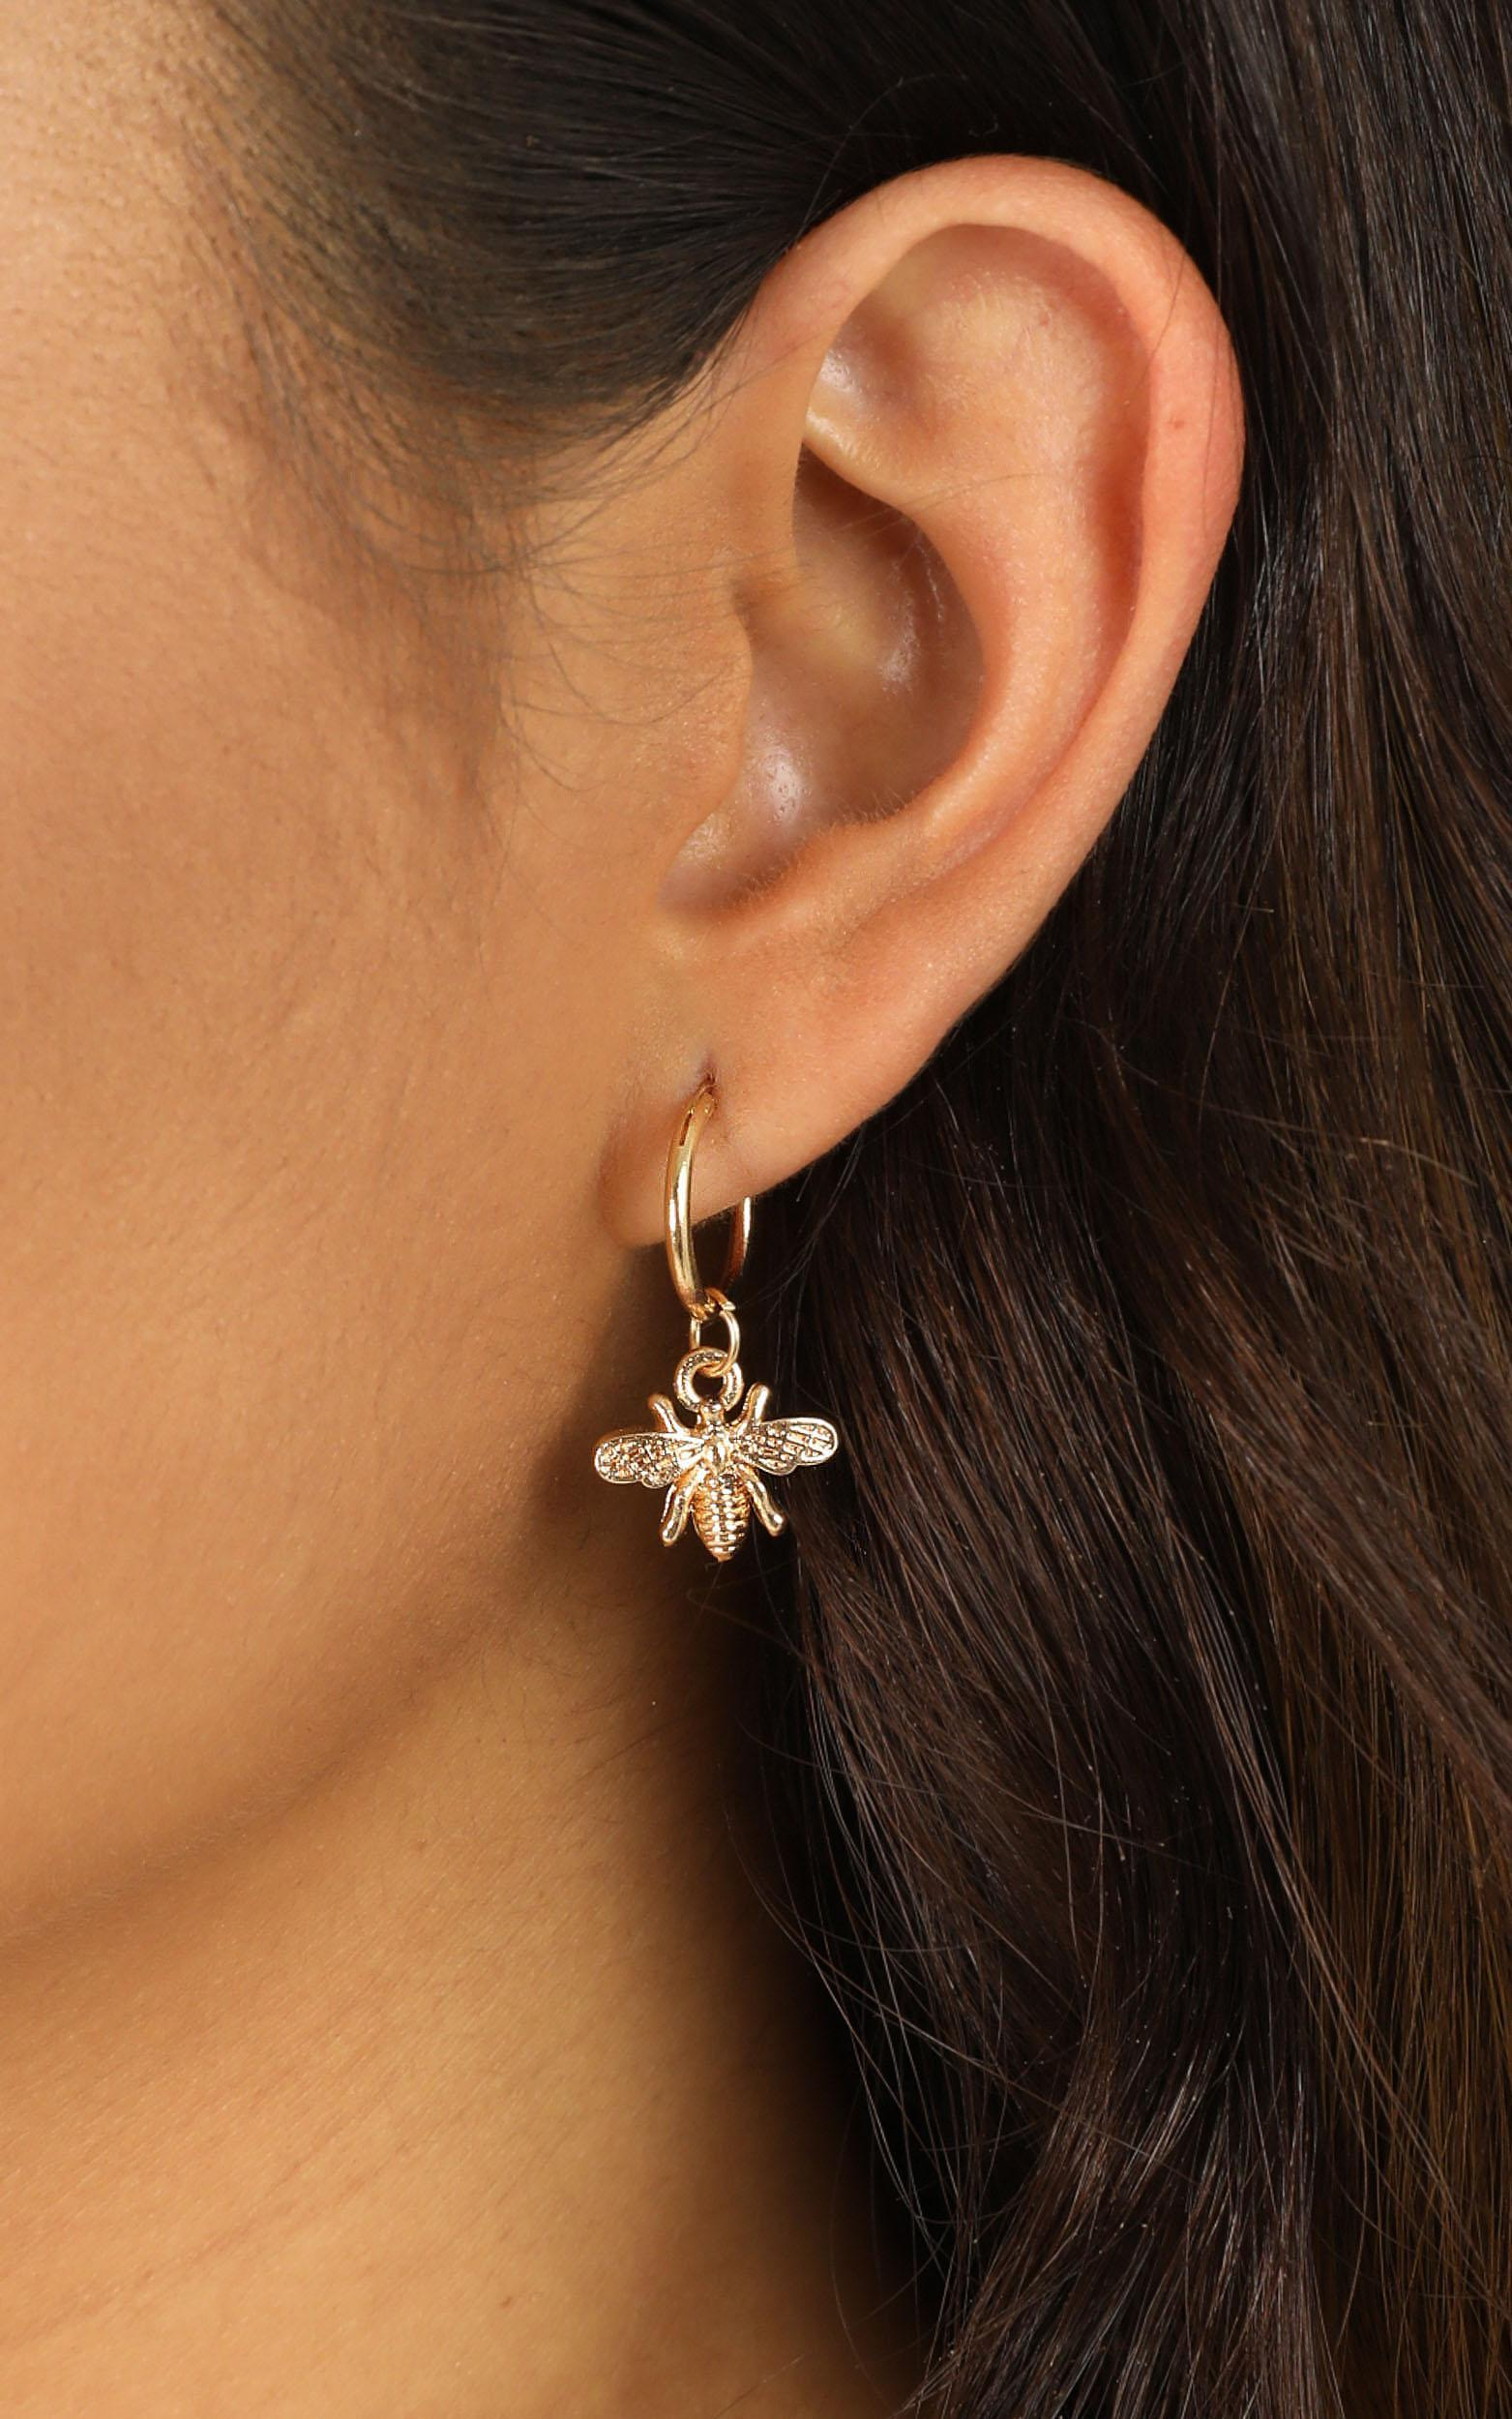 Can I Love You Earrings In Gold, , hi-res image number null